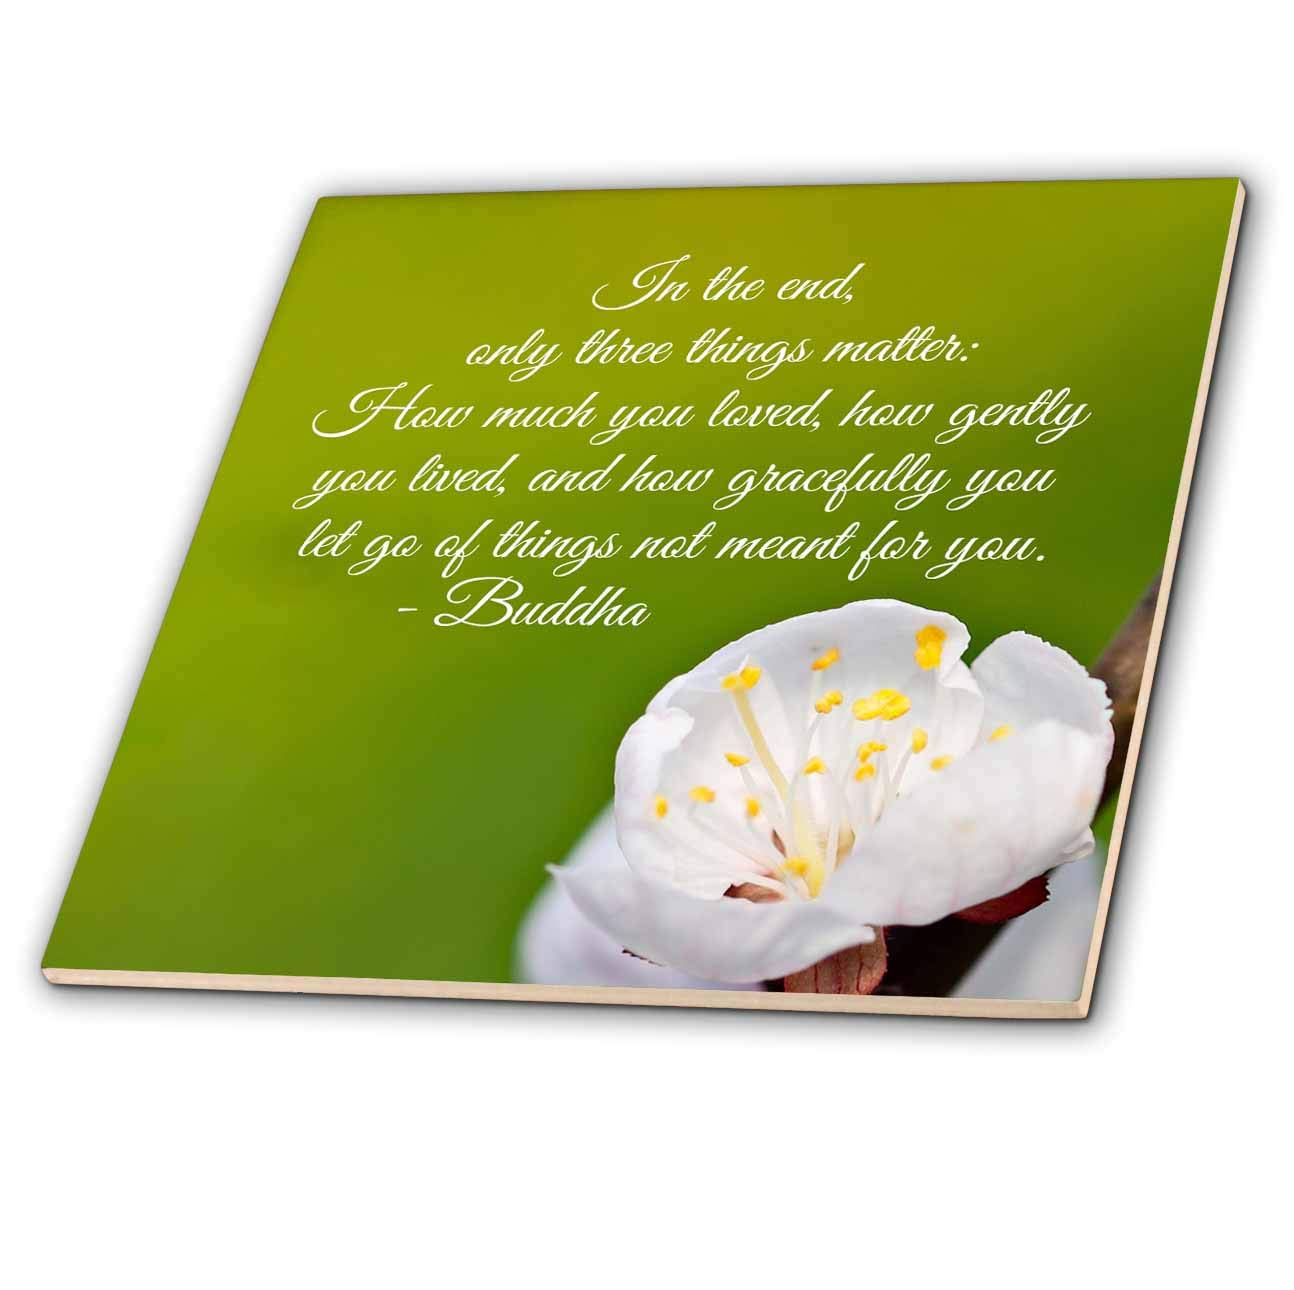 ct/_290879/_4 in The end only Three Things Matter 3dRose Alexis Design Quotes Inspirational Inspirational Buddha Quote 12 Inch Ceramic Tile